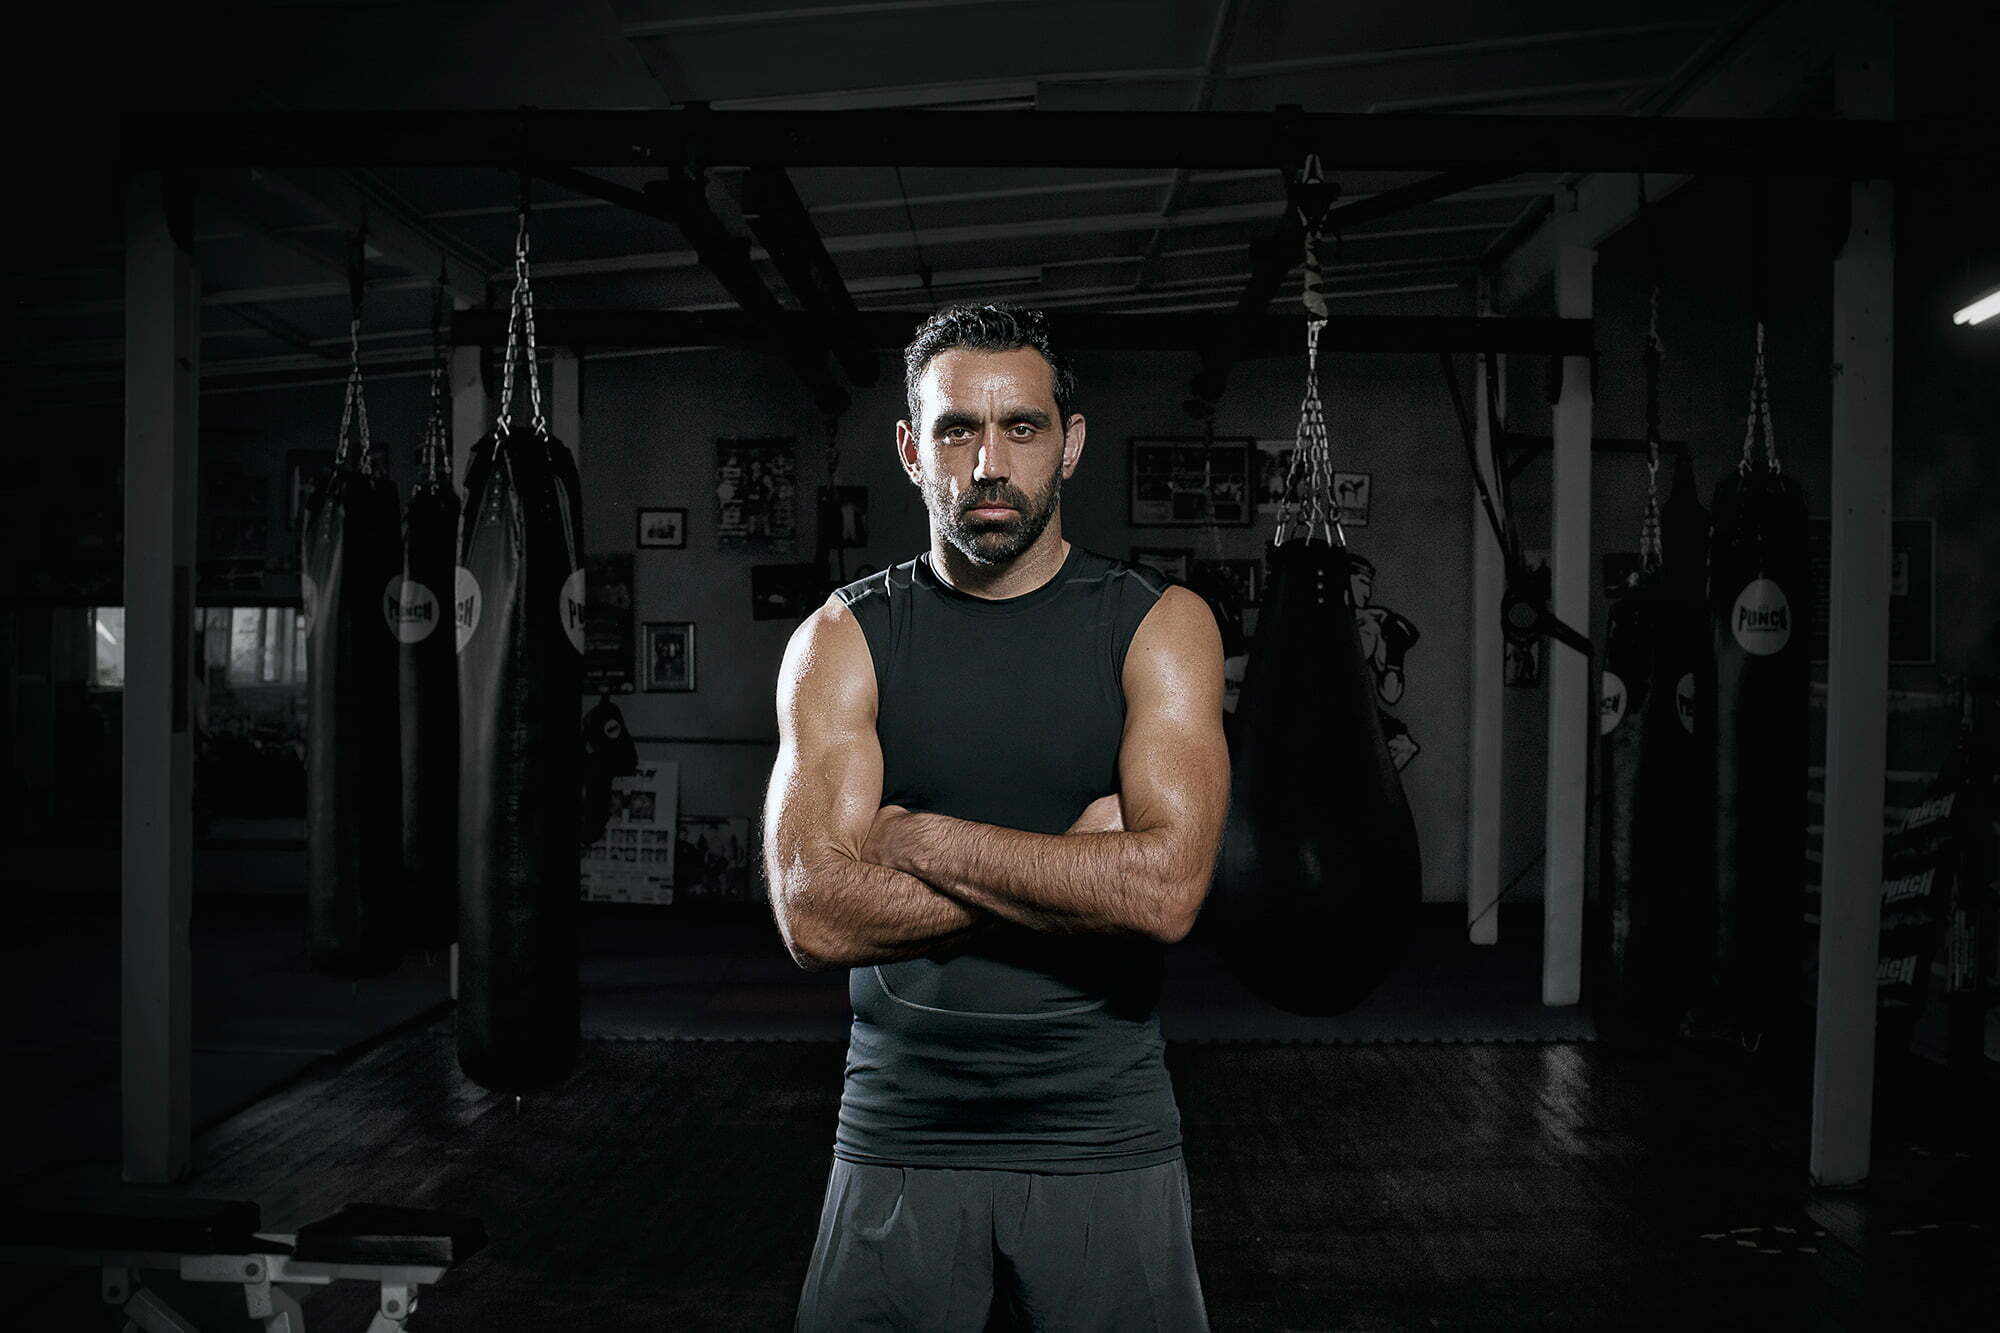 Adam Goodes & the AIS team up with Rexona to help Australians give their goal a game plan